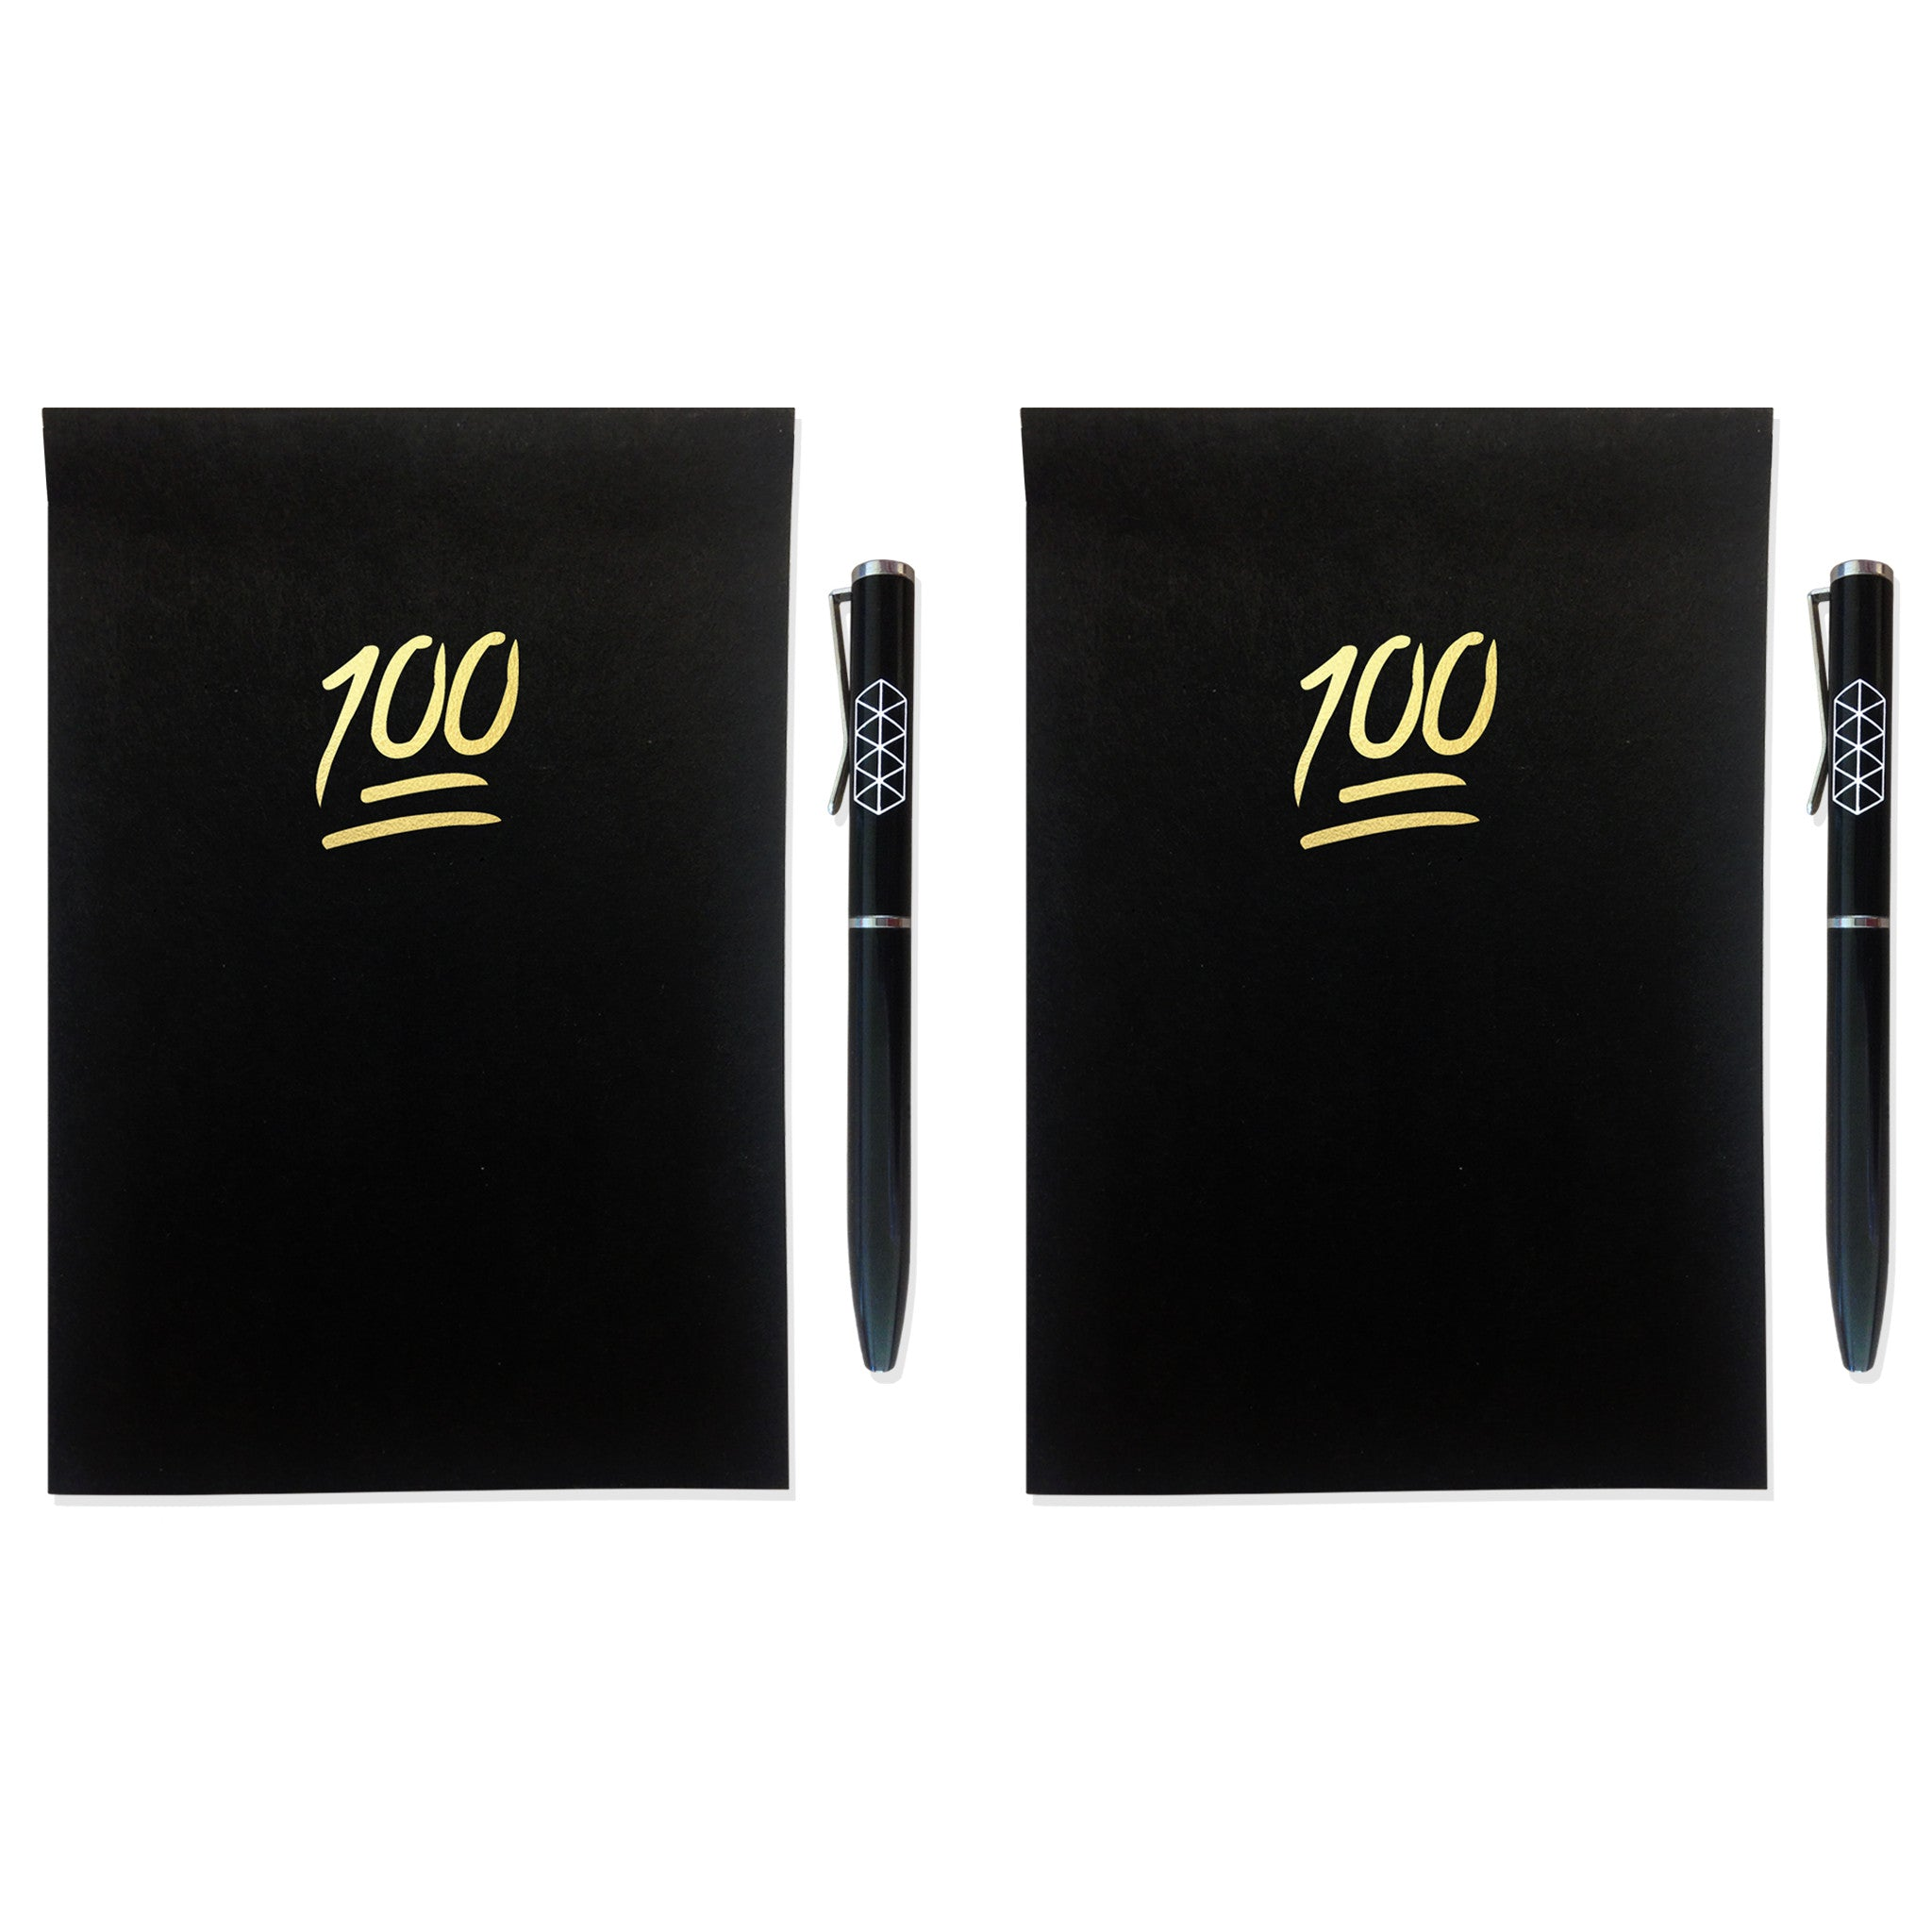 """100"" (2 Pack)"